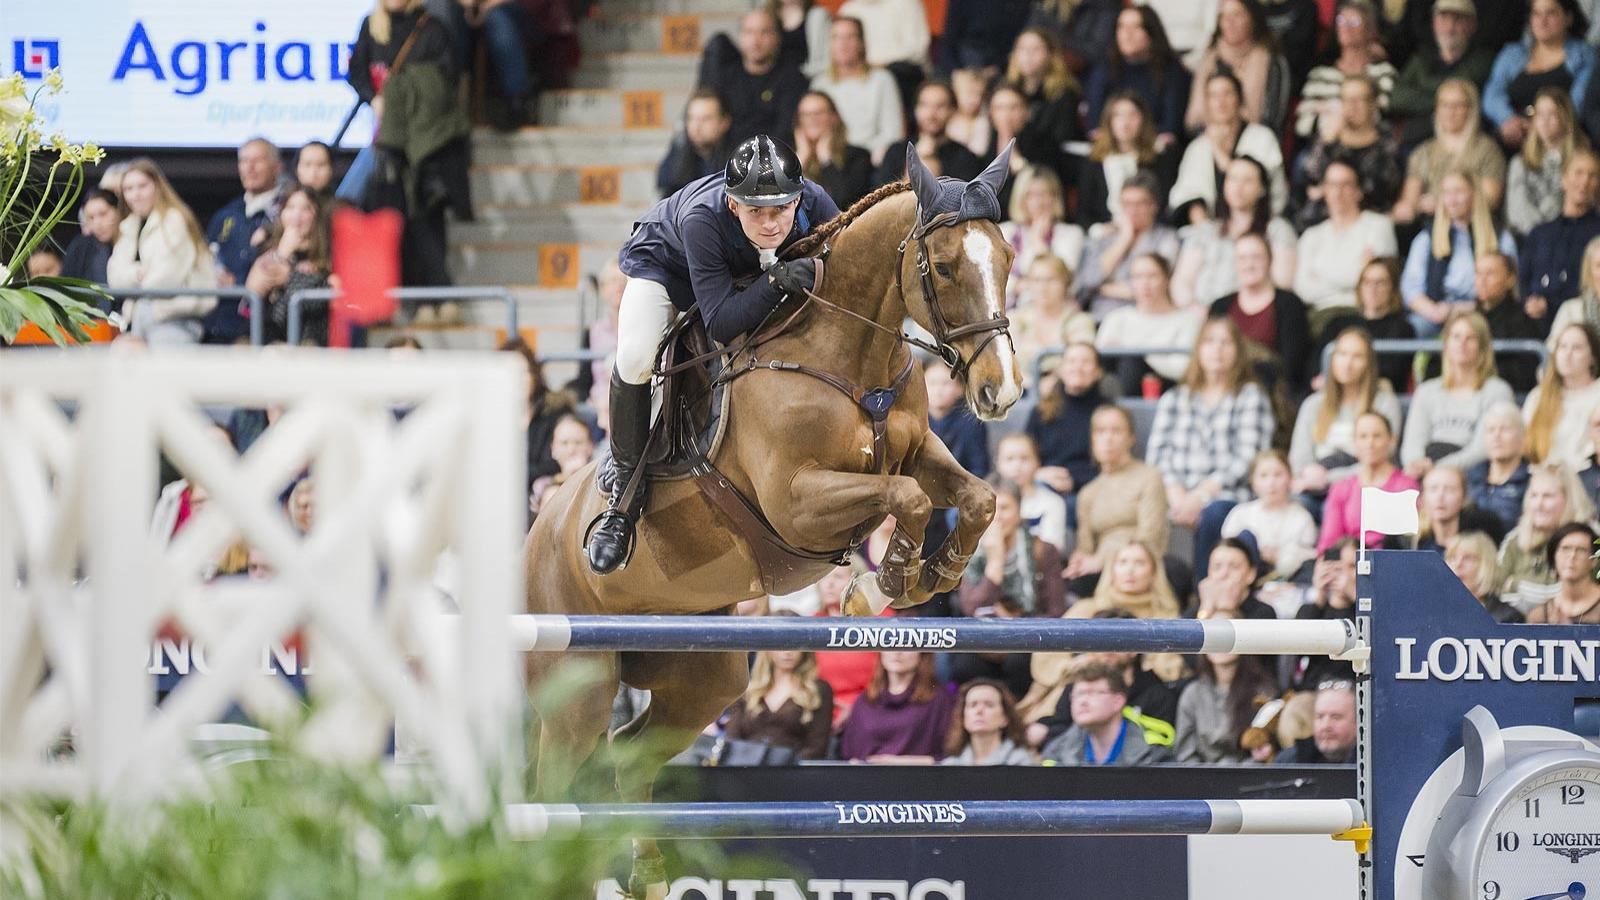 Geir Gulliksen; Vdl Groep Quatro; victory; Longines FEI Jumping World Cup Western European League